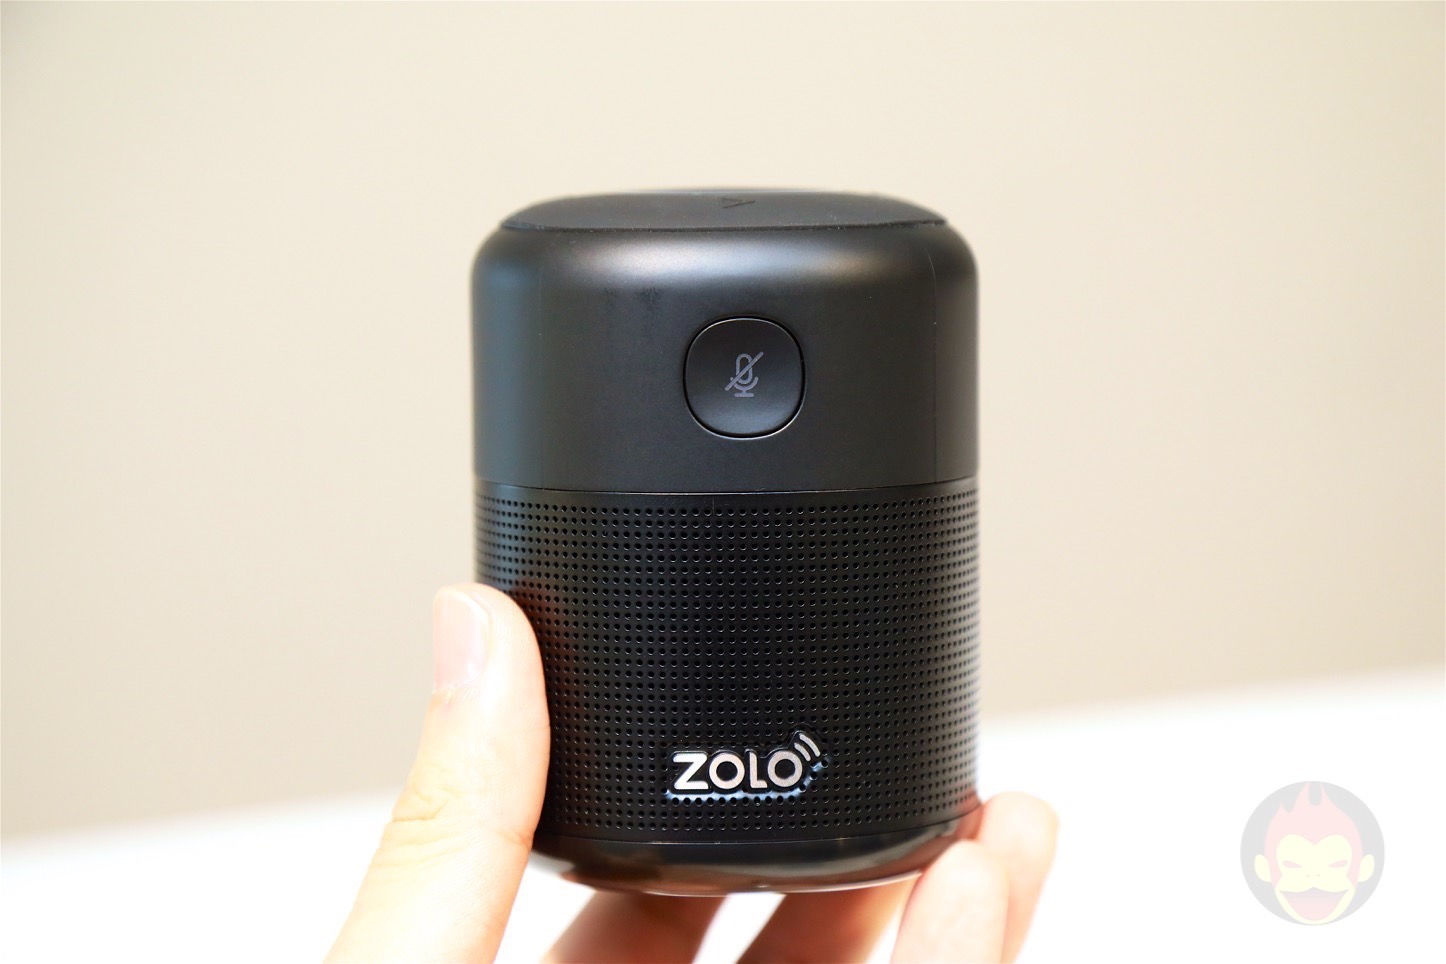 Anker Zolo Alexa Speakers